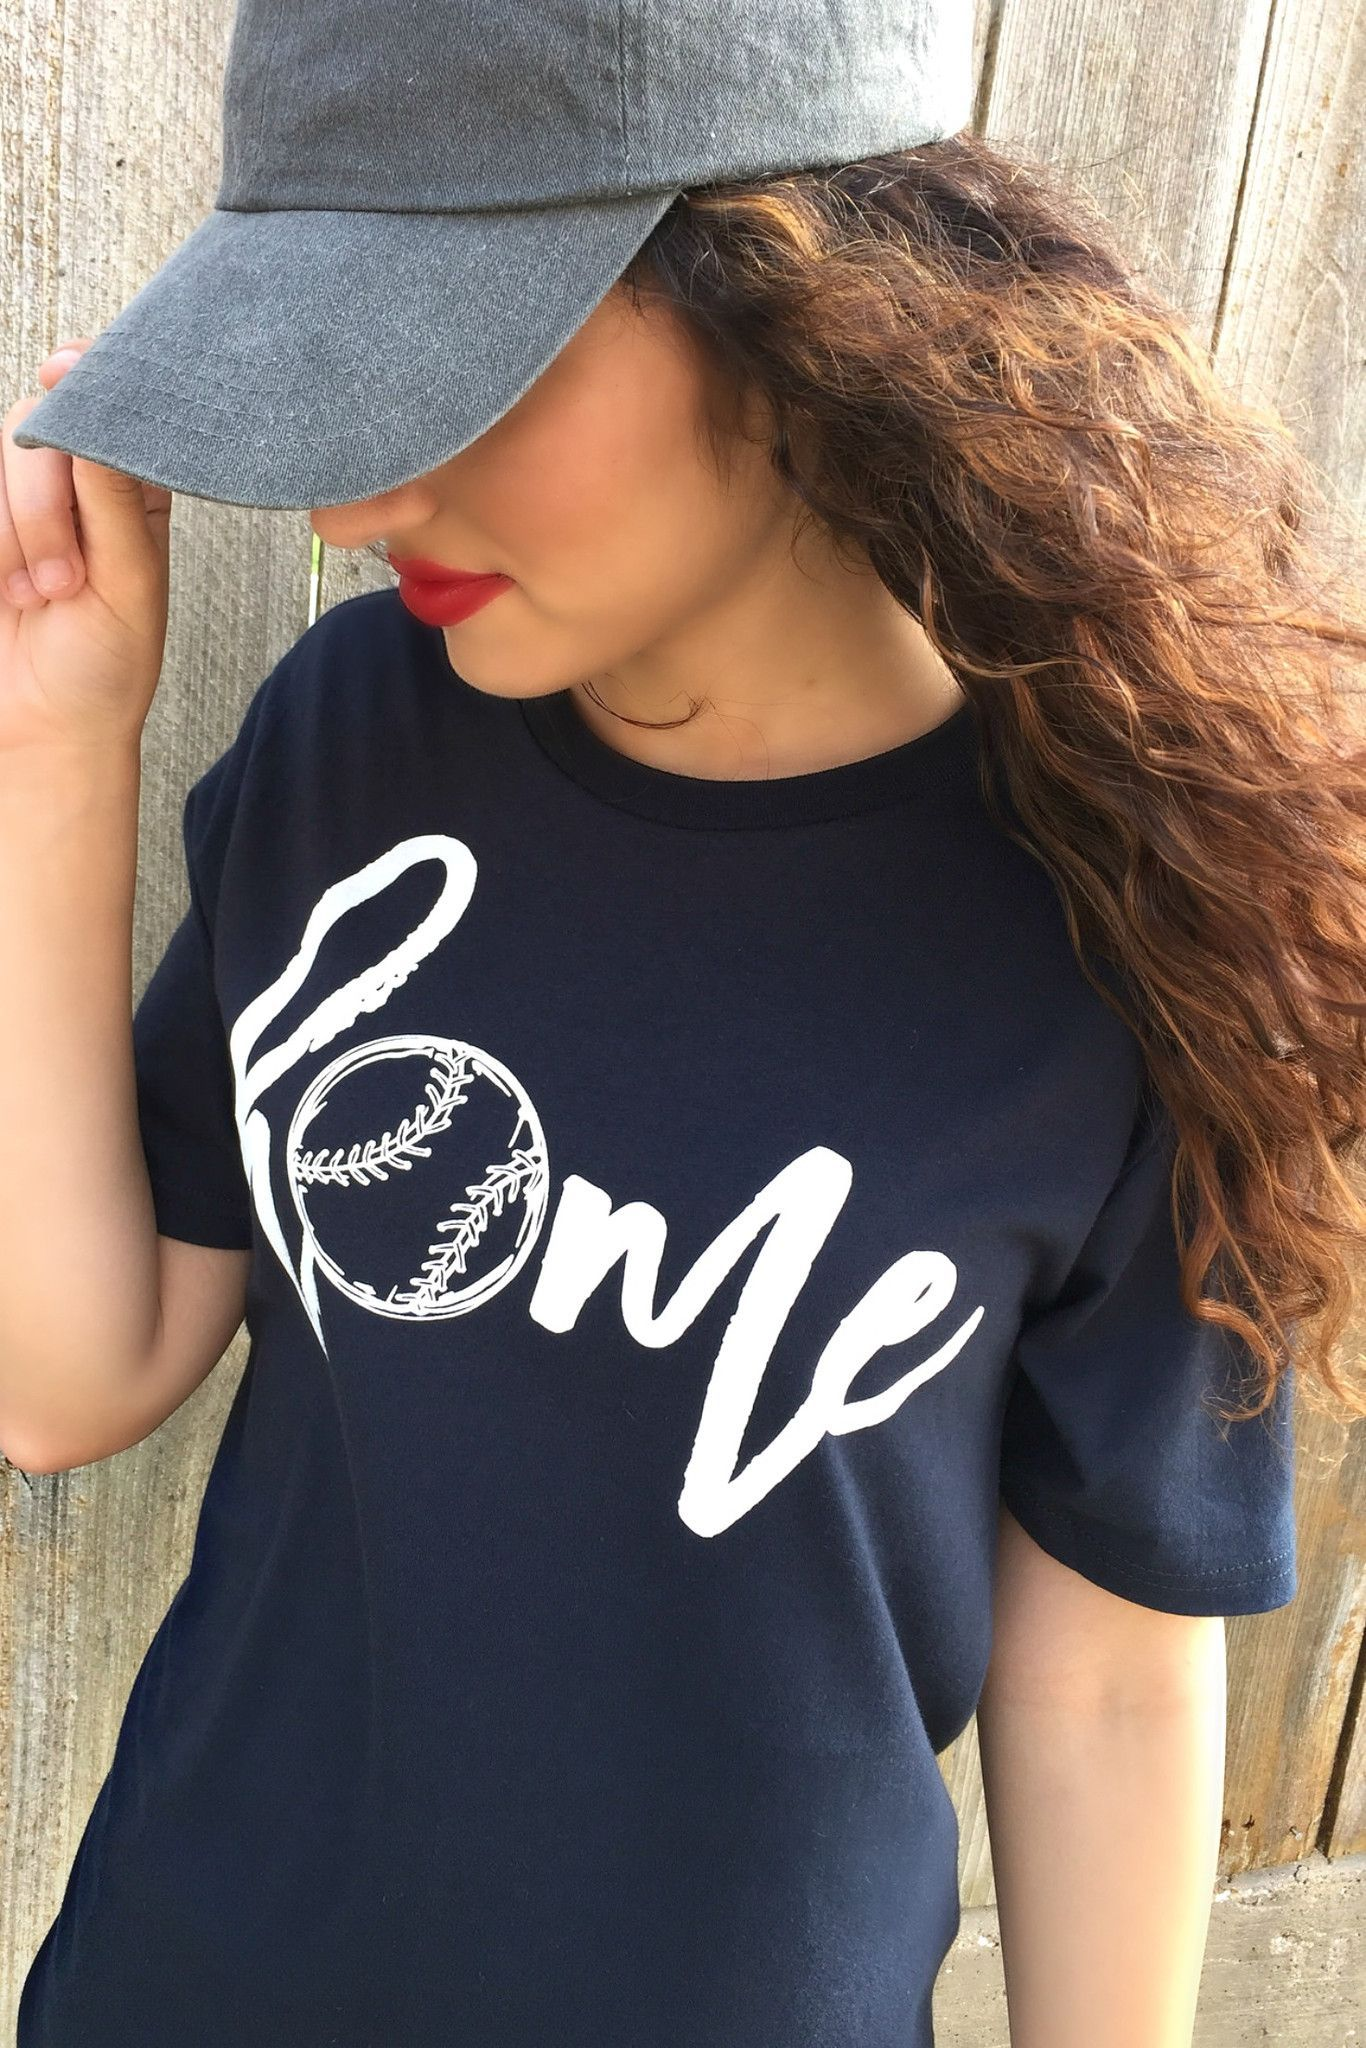 72cee4a1726 Our Home Tee - Baseball Edition is a LaRue exclusive and features a navy  blue super soft tee with the word